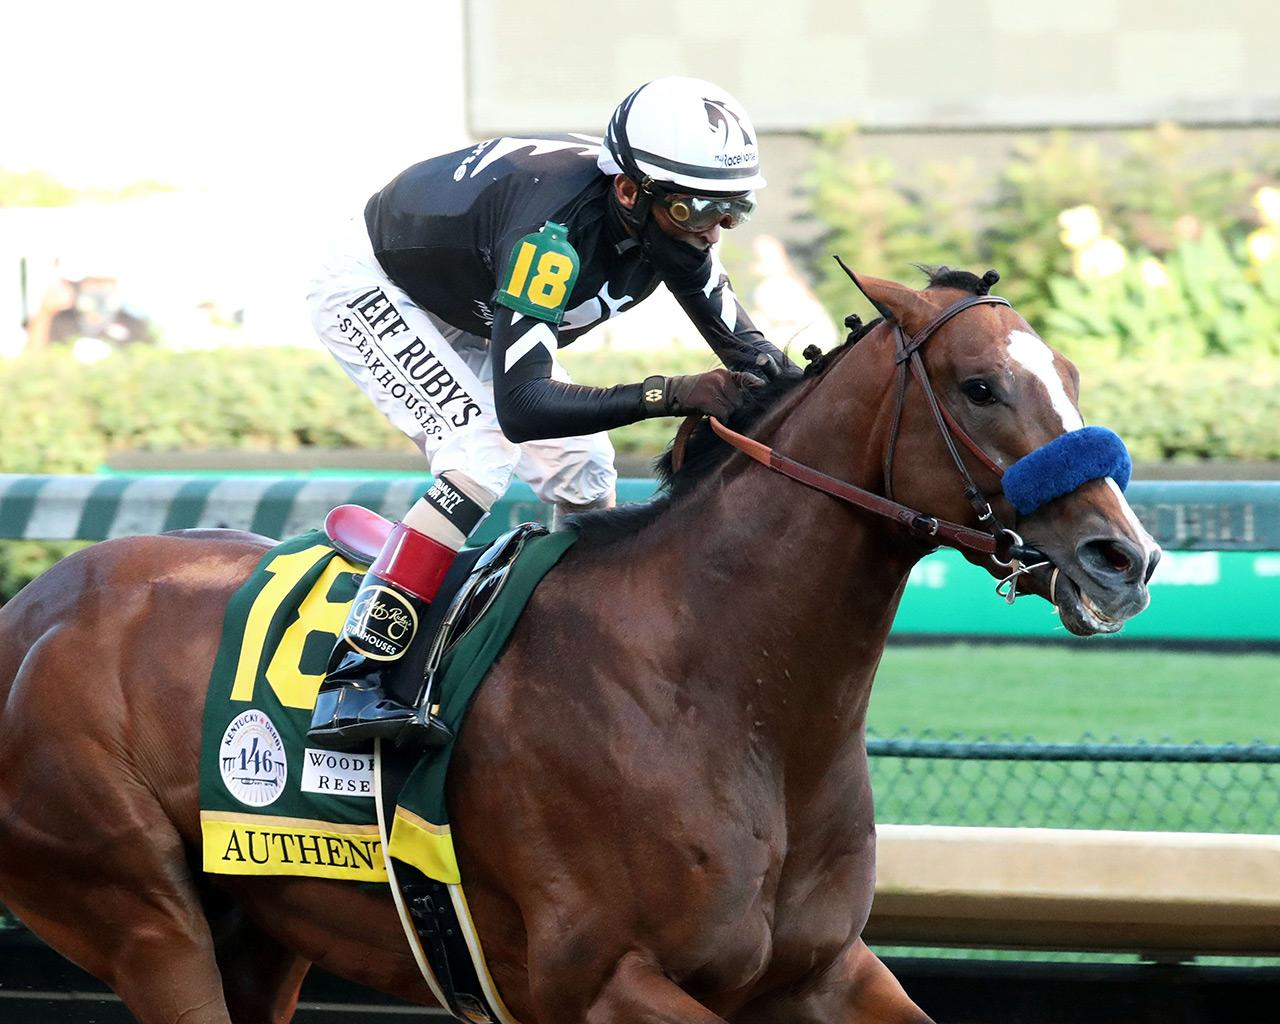 AUTHENTIC---The-Kentucky-Derby---146th-Running---09-05-20---R14---CD---Finish-03